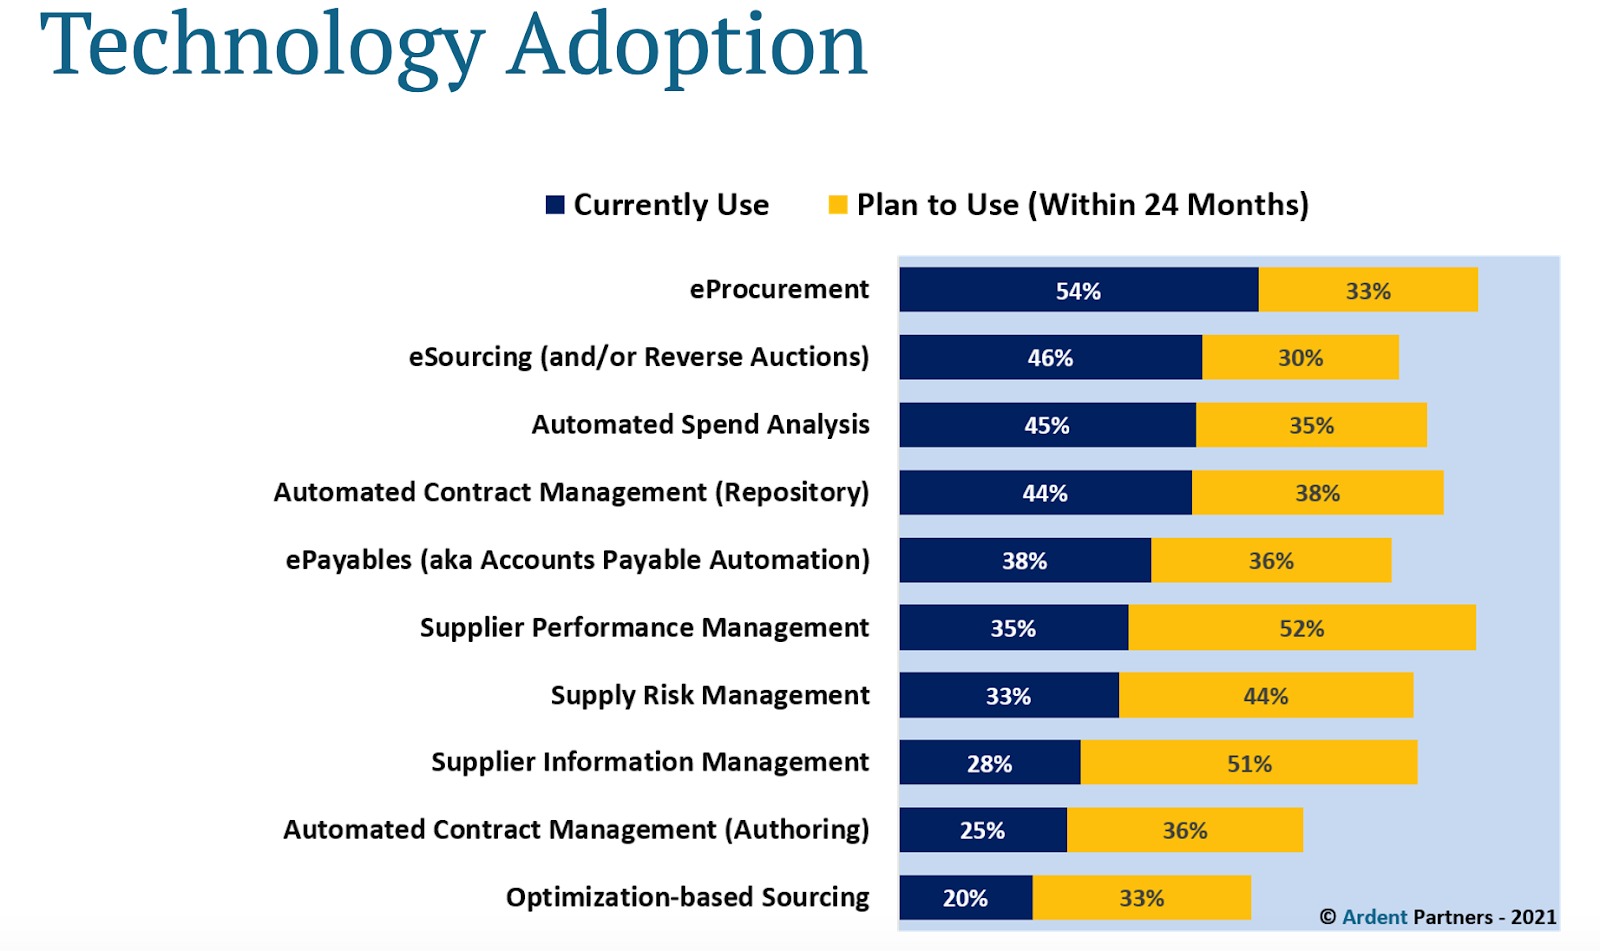 Ardent Partners report - Technology Adoption